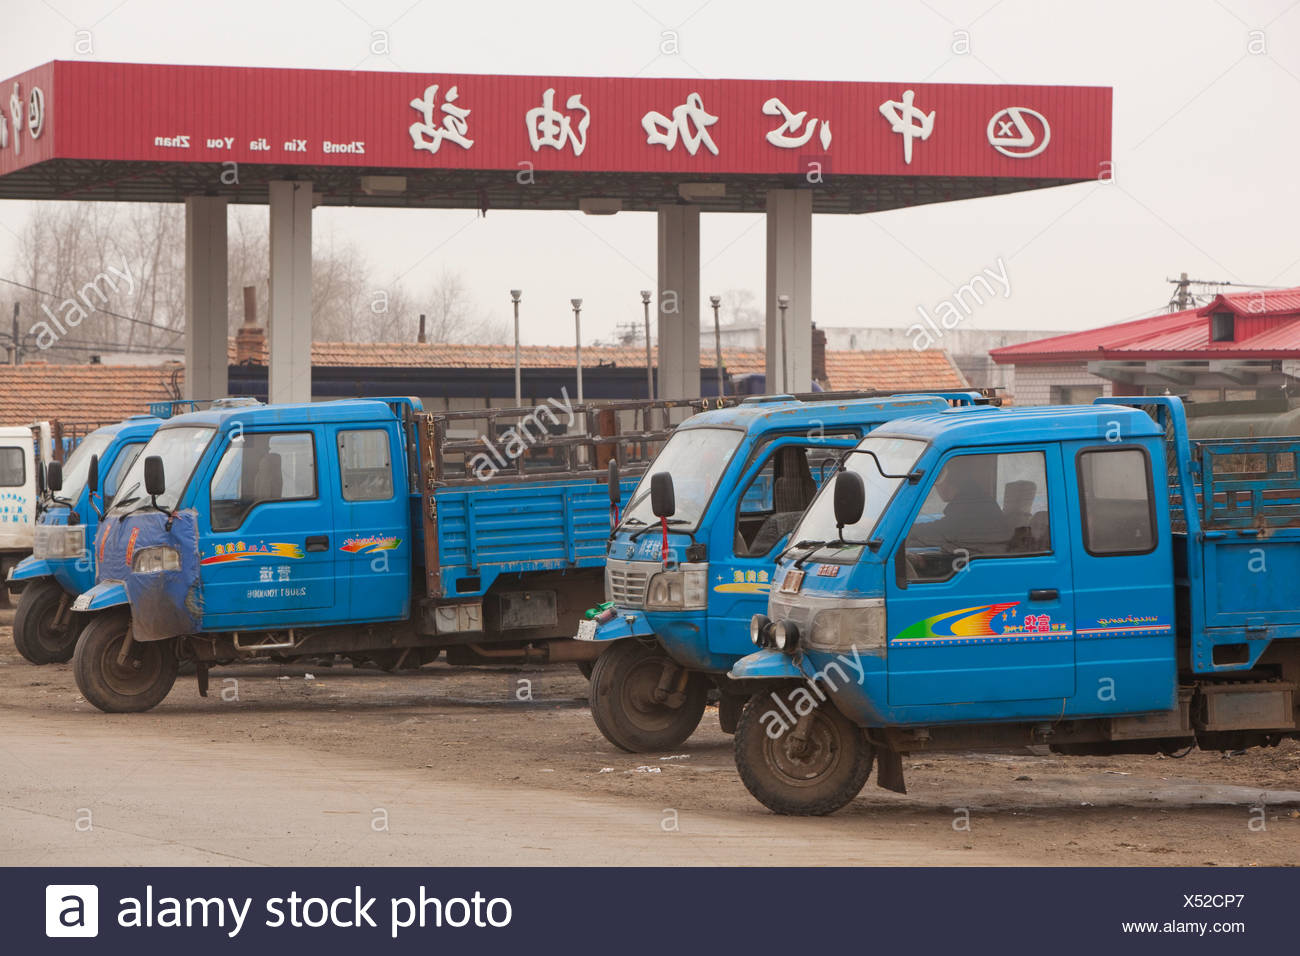 Highly ineficient and polluting 3 wheel trucks in northern China - Stock Image